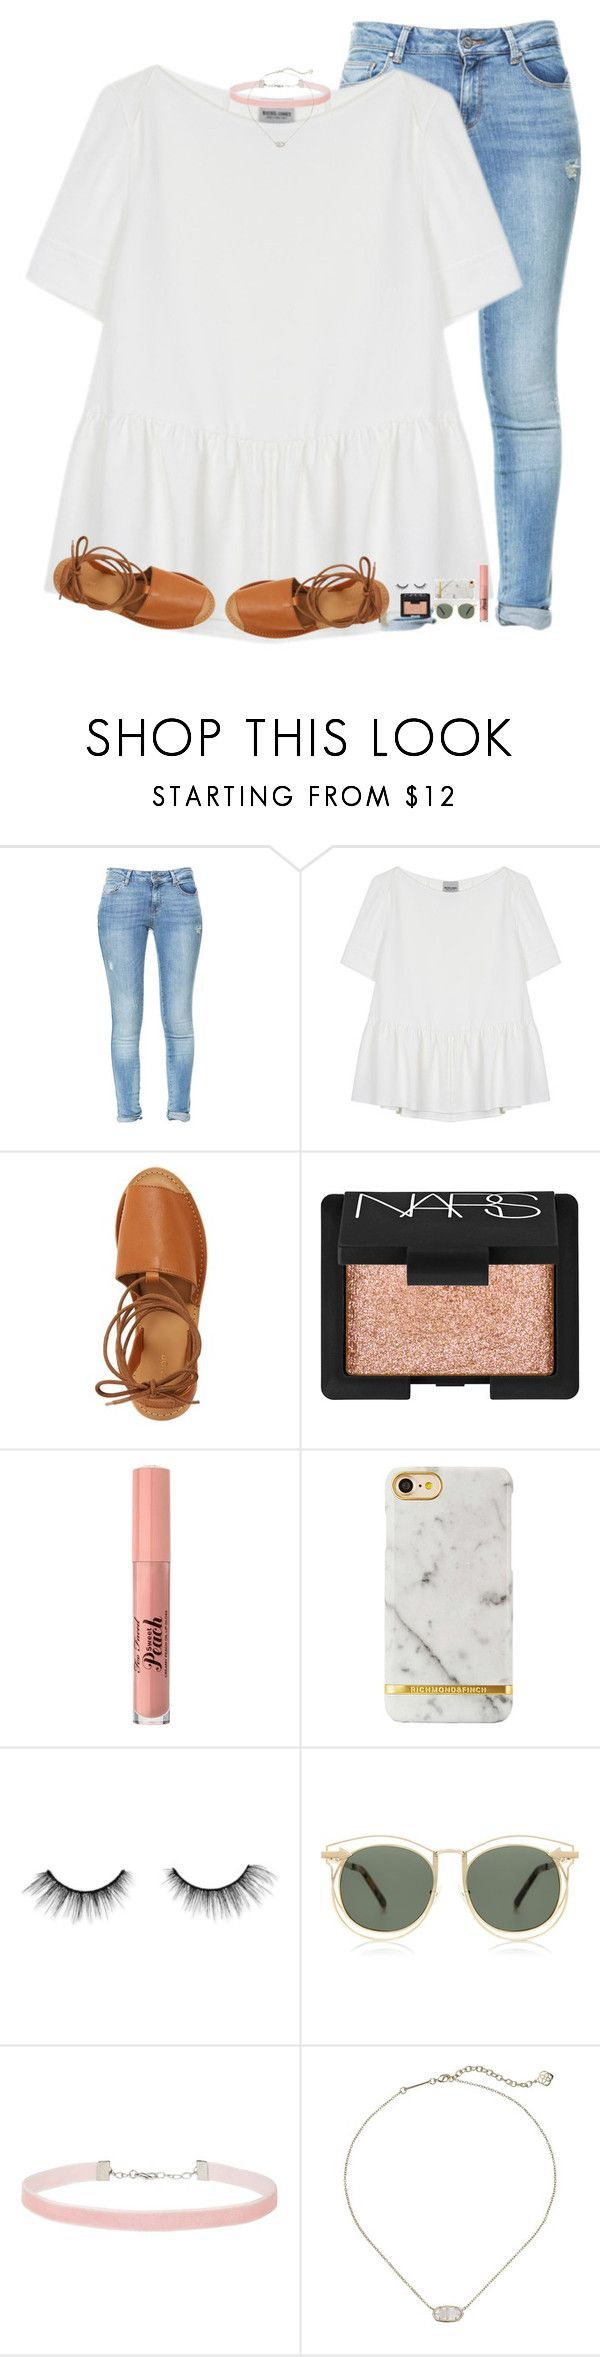 """comment any youtuber recommendations"" by hgw8503 ❤ liked on Polyvore featuring Zara, Rachel Comey, Topshop, NARS Cosmetics, Too Faced Cosmetics, tarte, Karen Walker, Miss Selfridge and Kendra Scott"